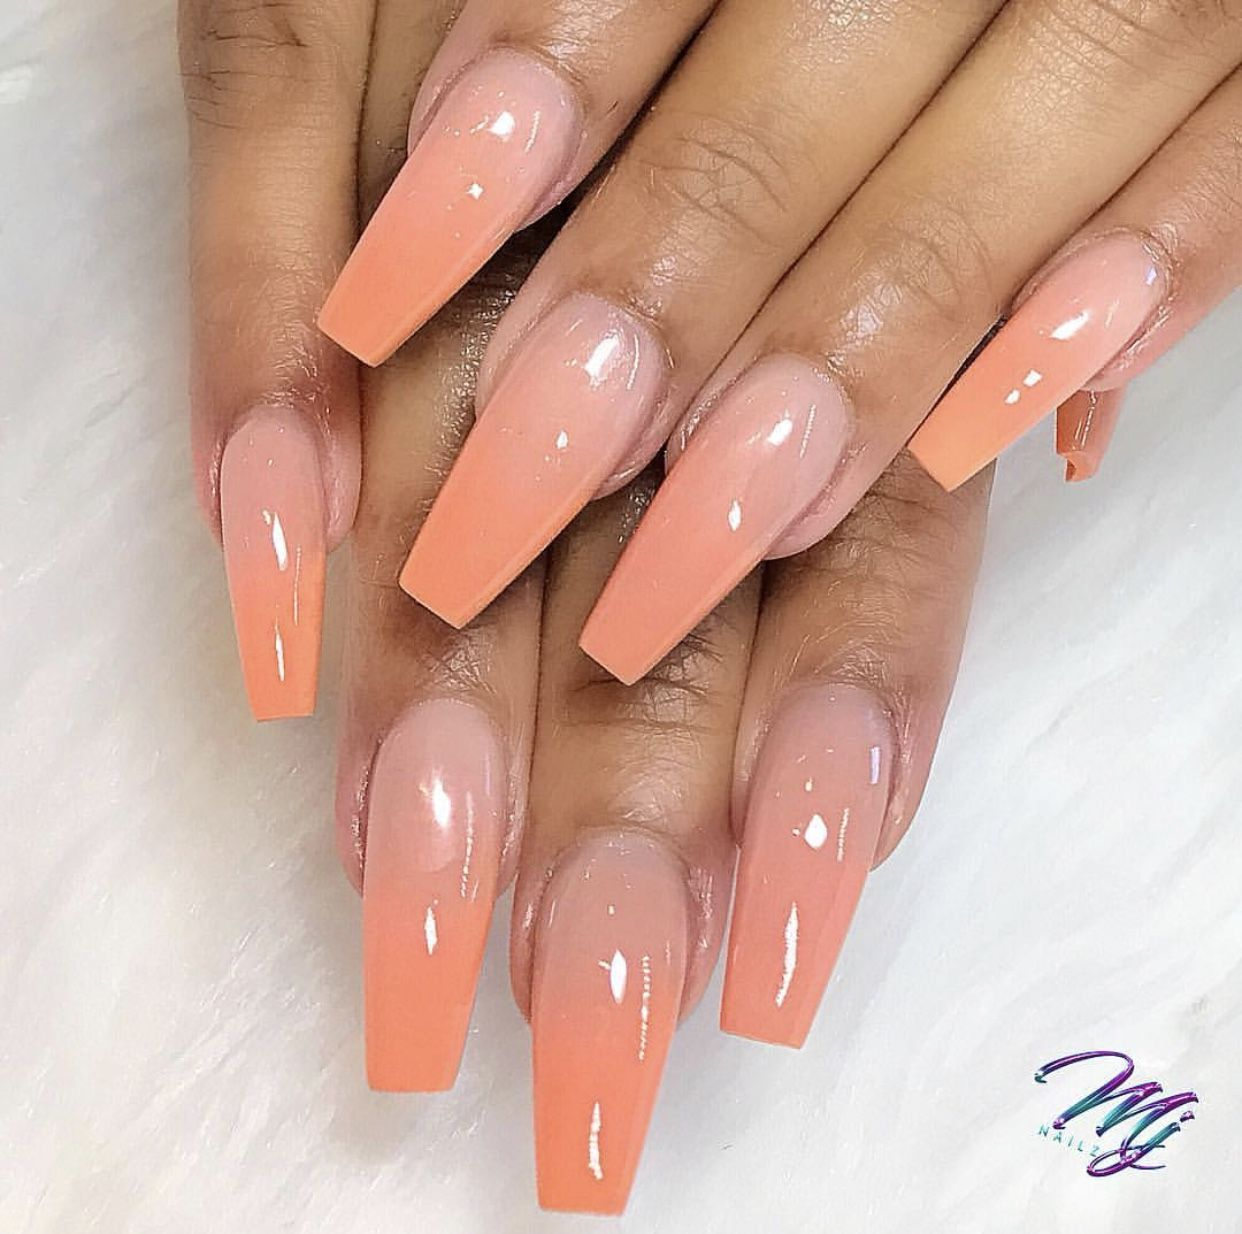 Pin By Berenice On Nailssss Peach Acrylic Nails Peach Nails Orange Ombre Nails